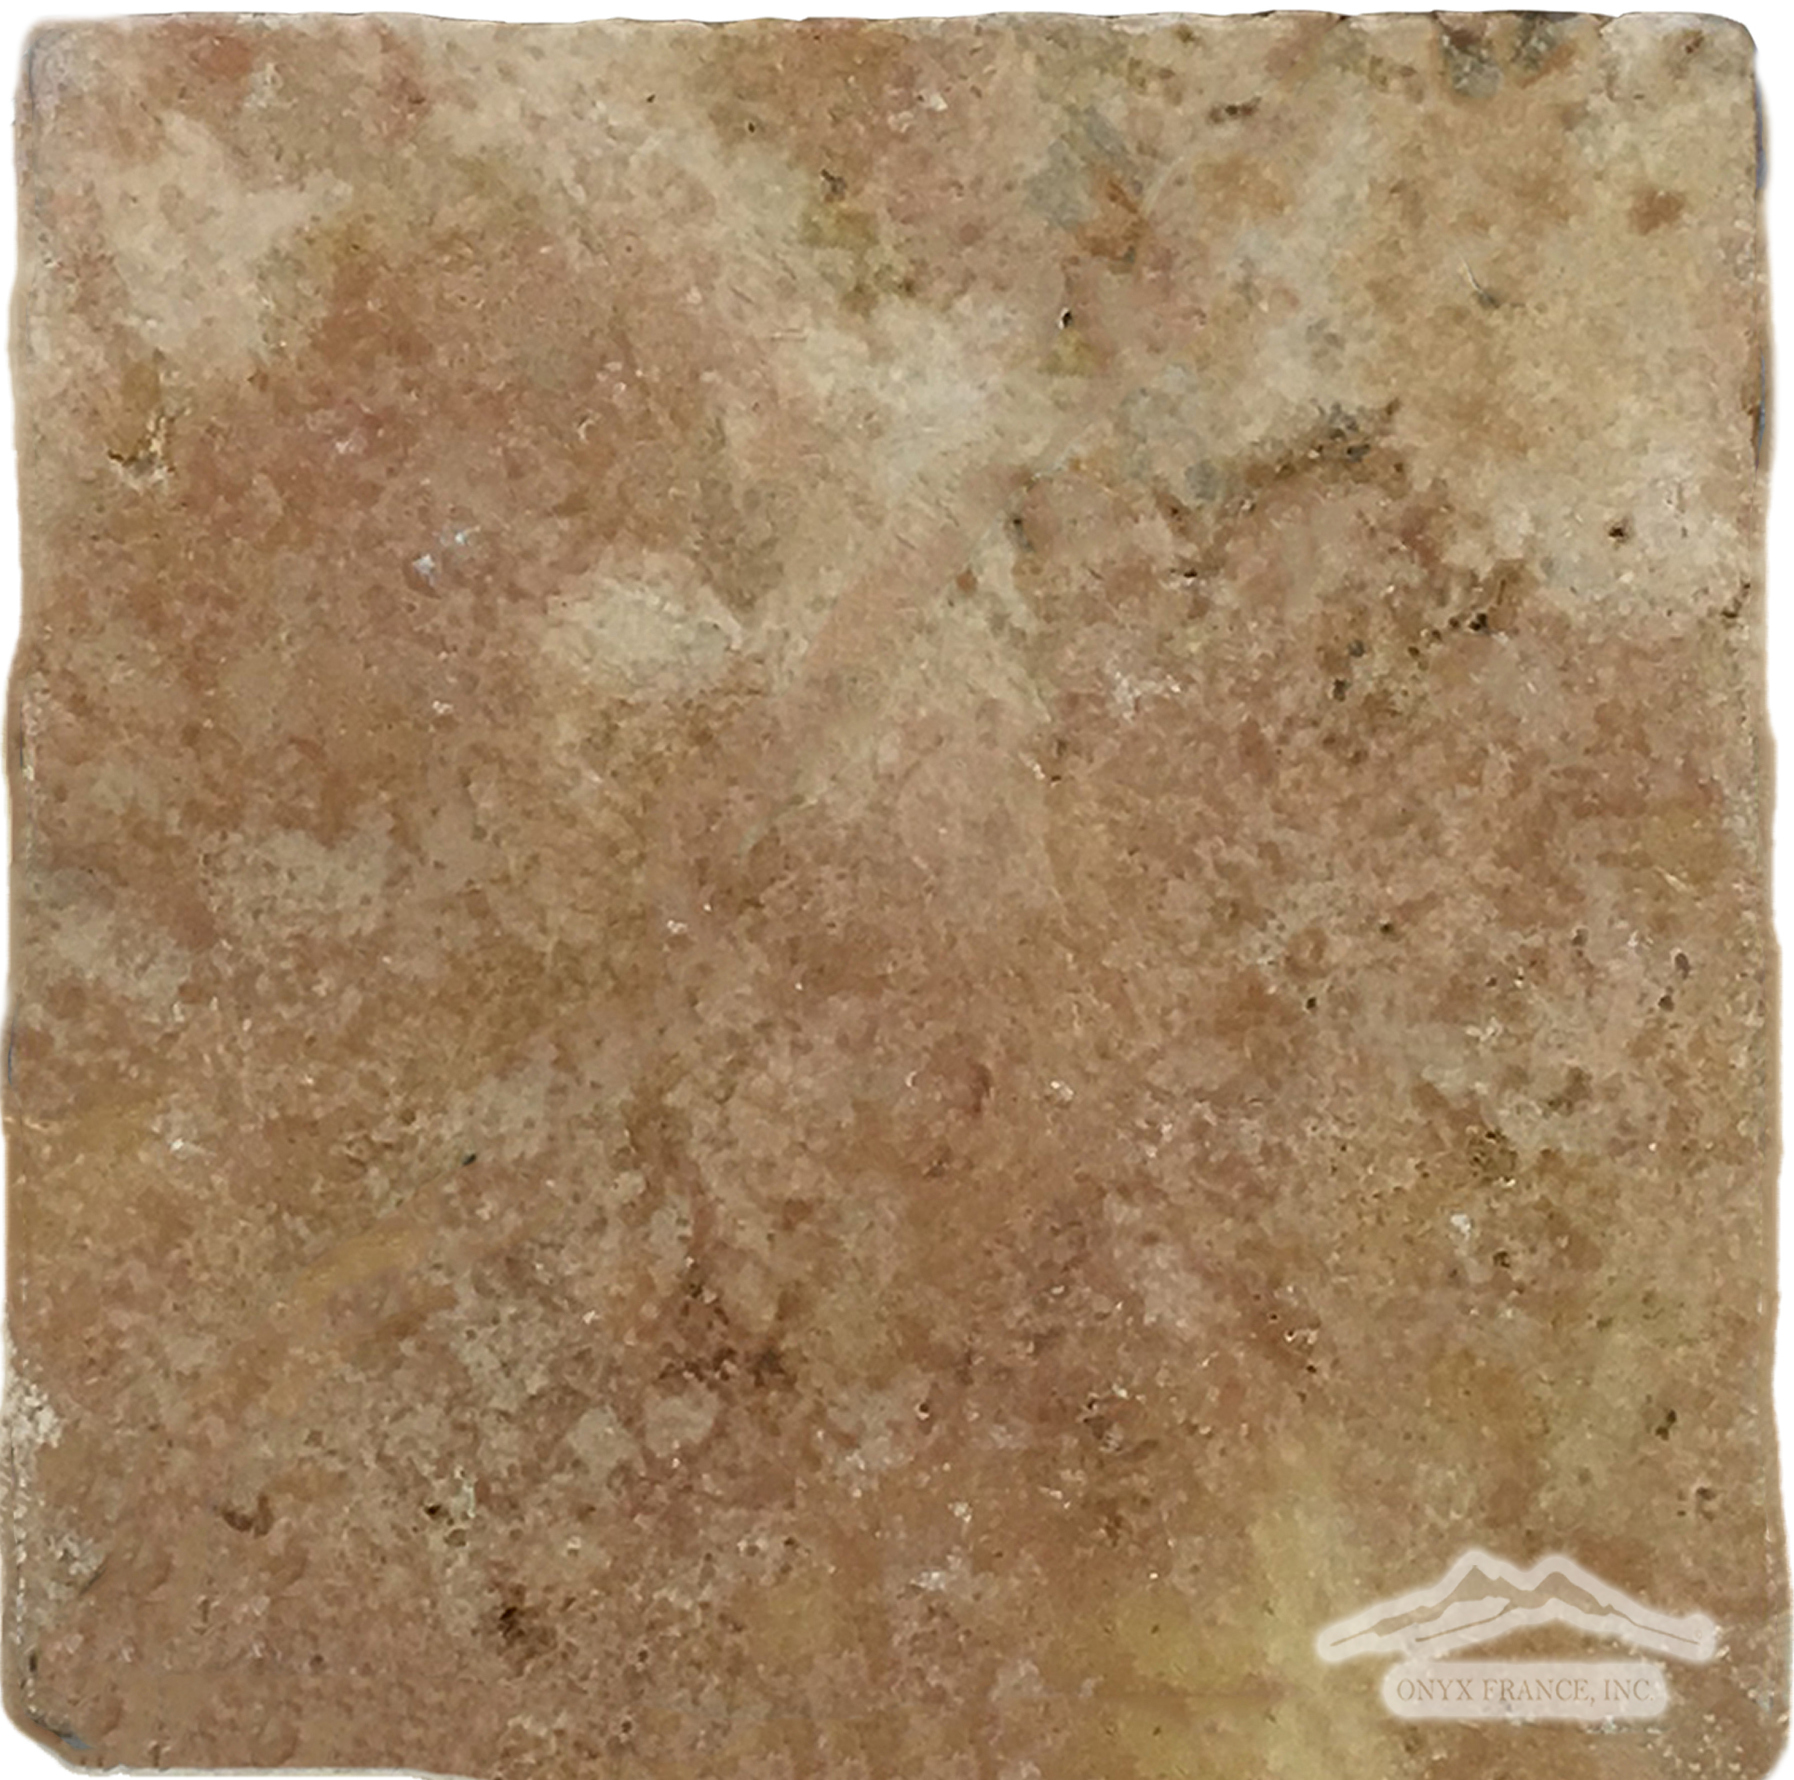 "Peach Travertine 12"" x 12"" Tile Tumbled"